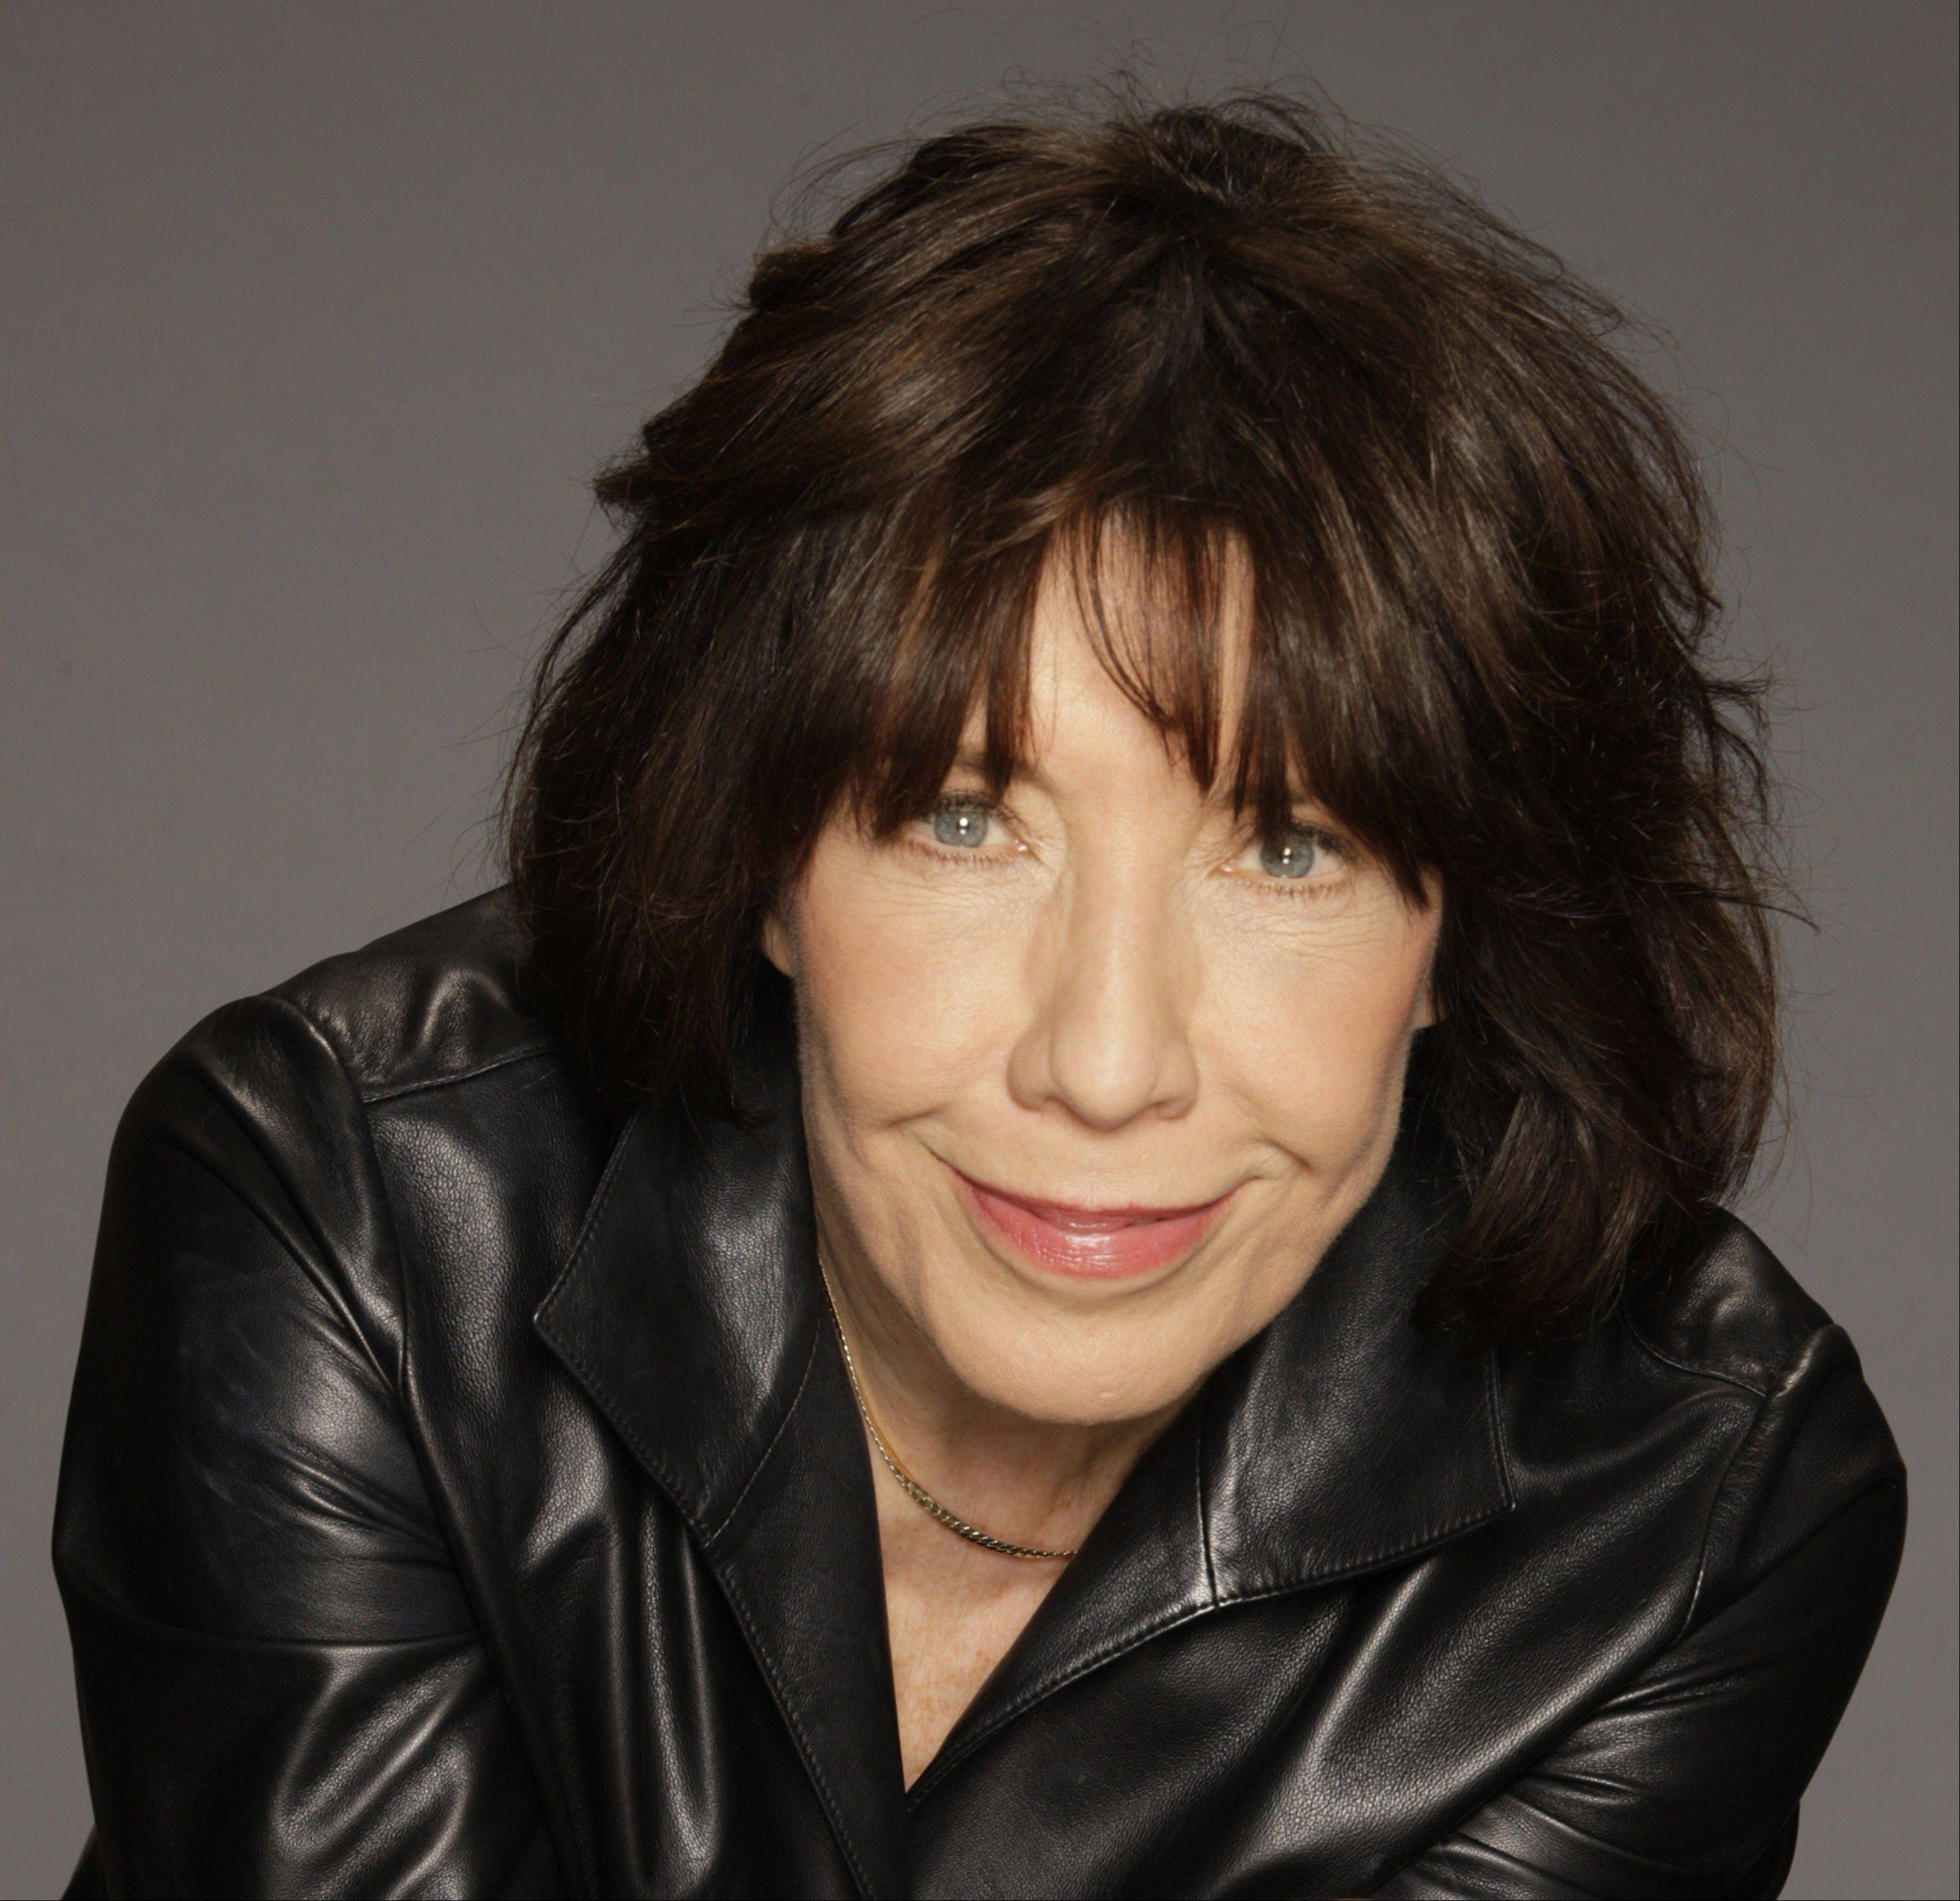 Comedian and actress Lily Tomlin headlines at the North Shore Center for the Performing Arts in Skokie.